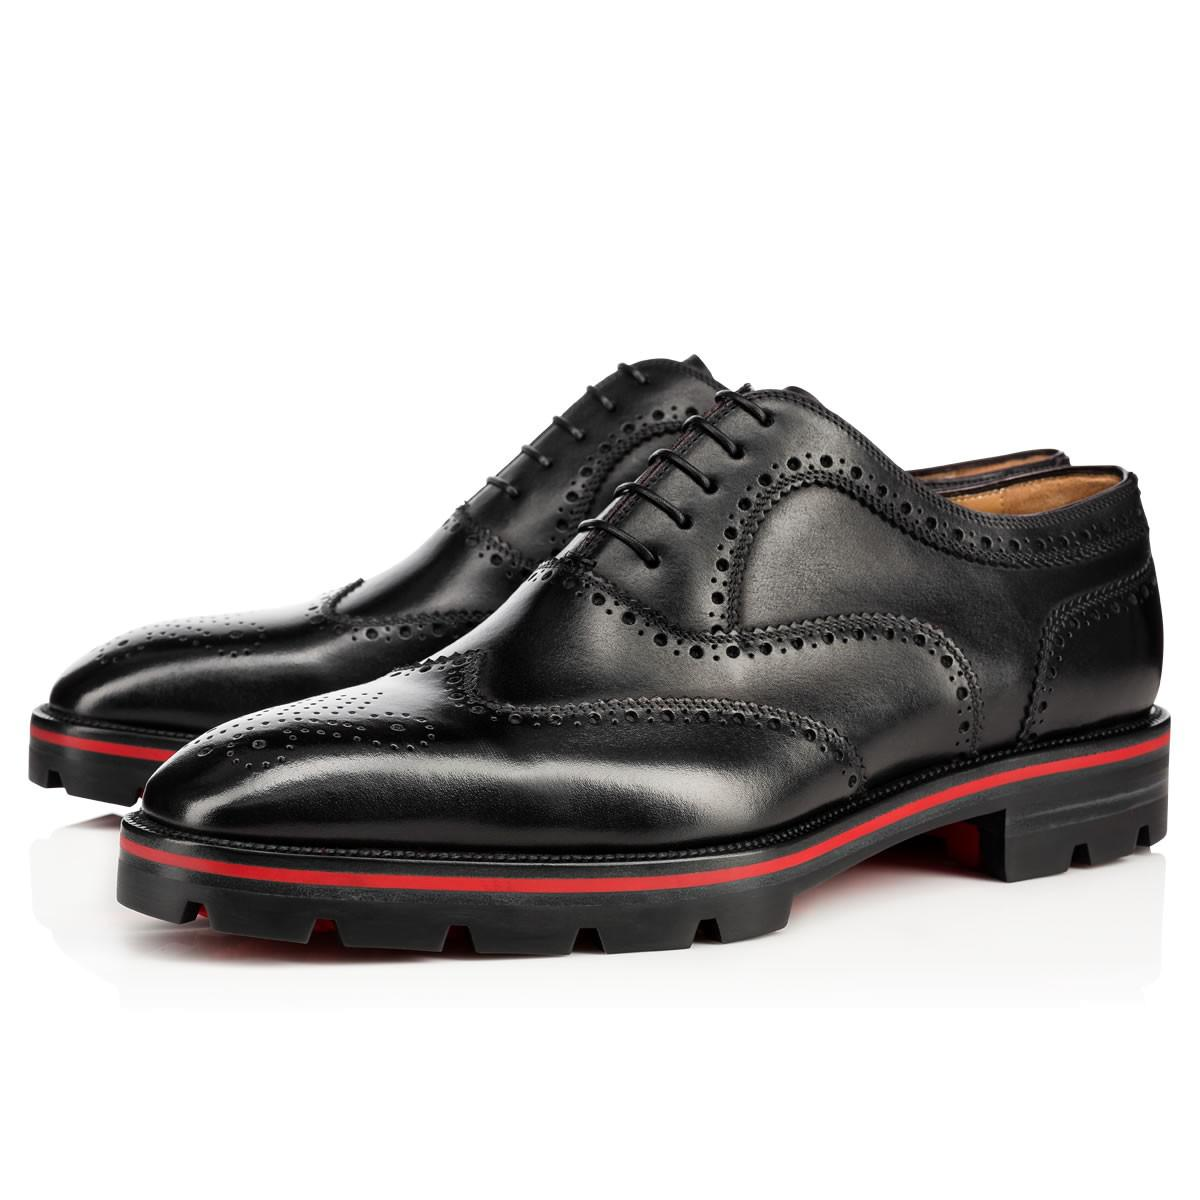 ee6c5f12144 Lyst - Christian Louboutin Charlie Me Flat in Black for Men